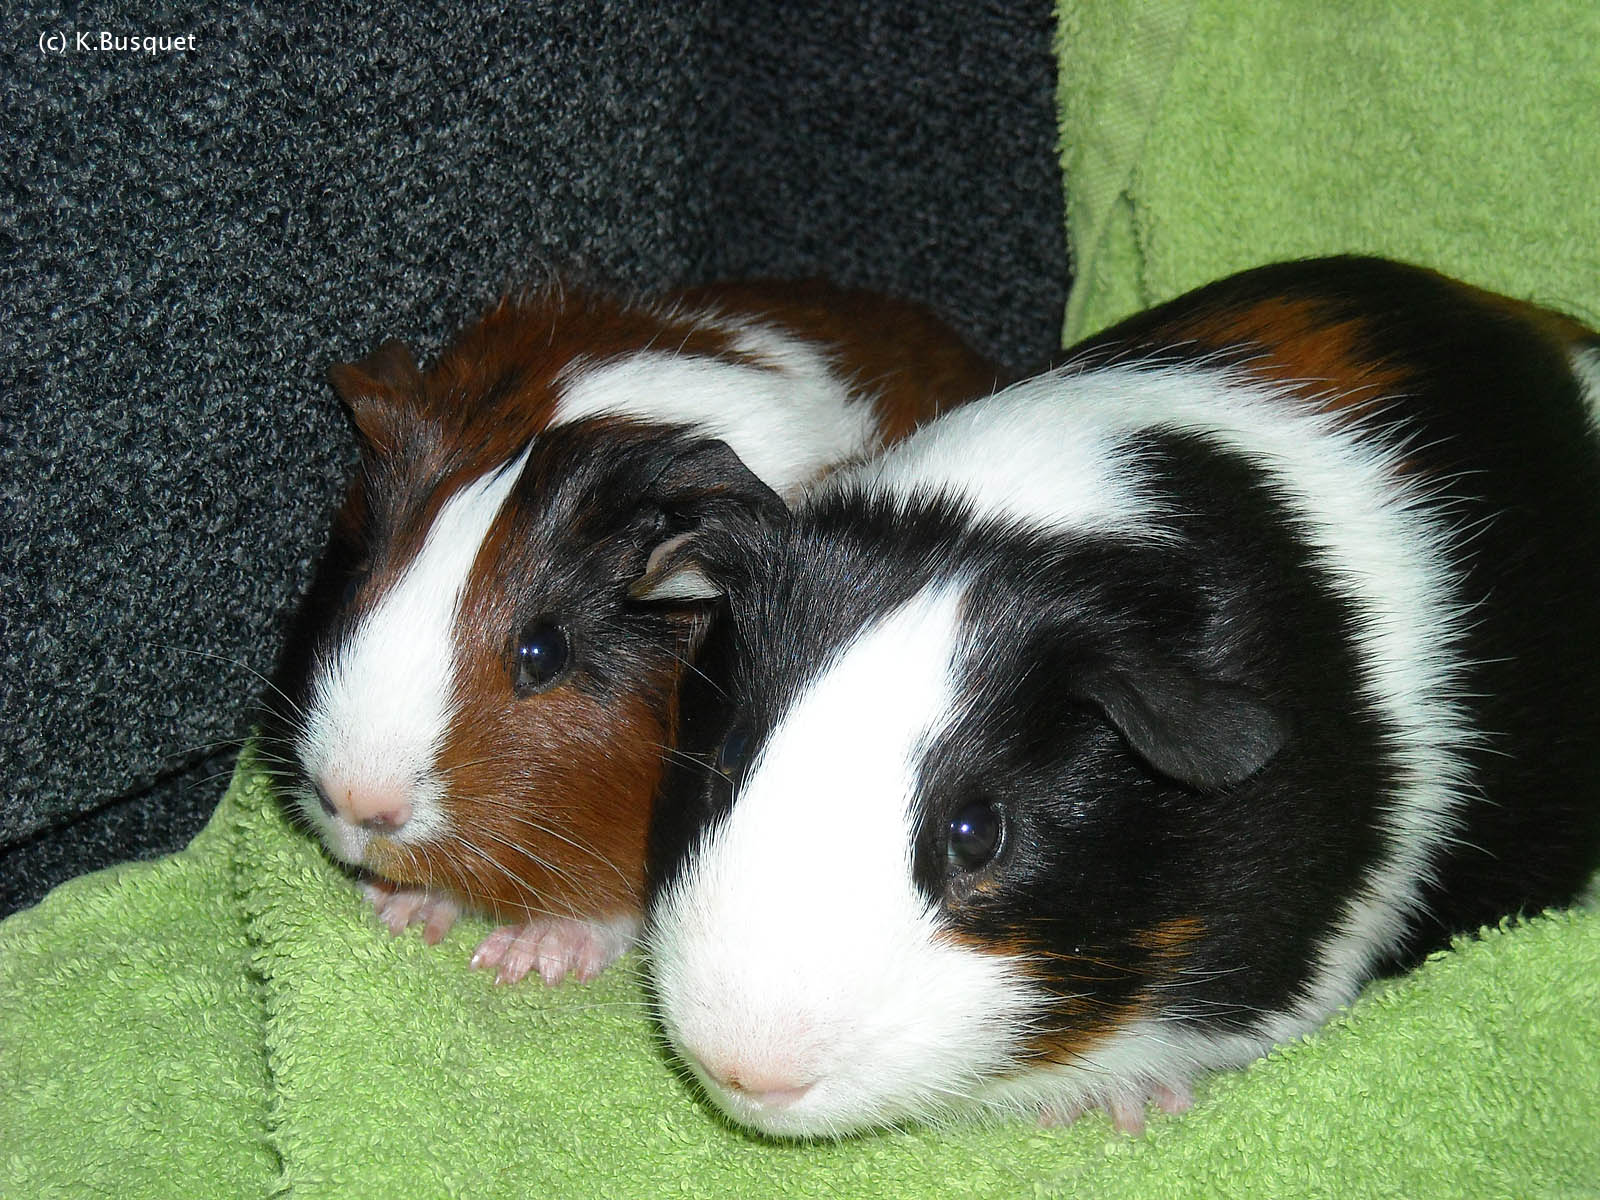 Very Sweet and Cute Animals Funny Guinea Pig wallpaper for widescreen 1600x1200